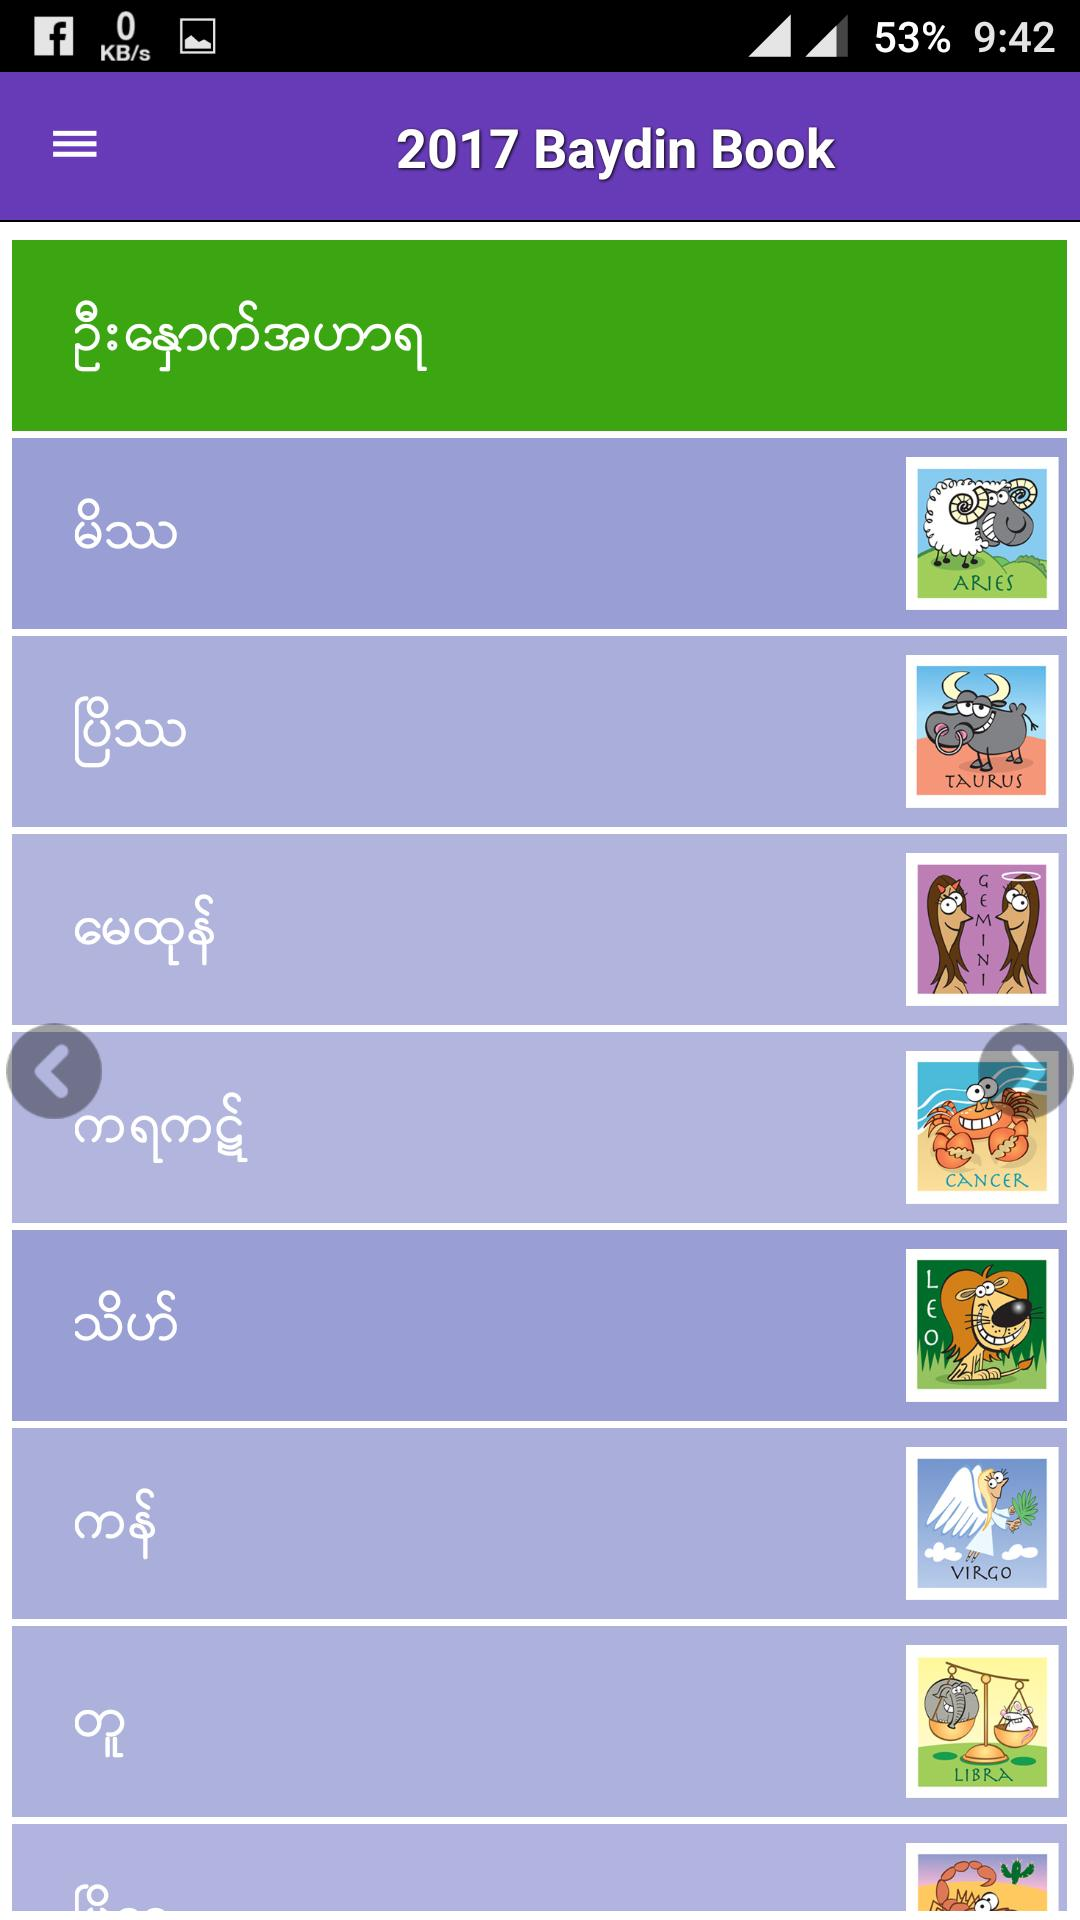 2017 Baydin Book for Android - APK Download